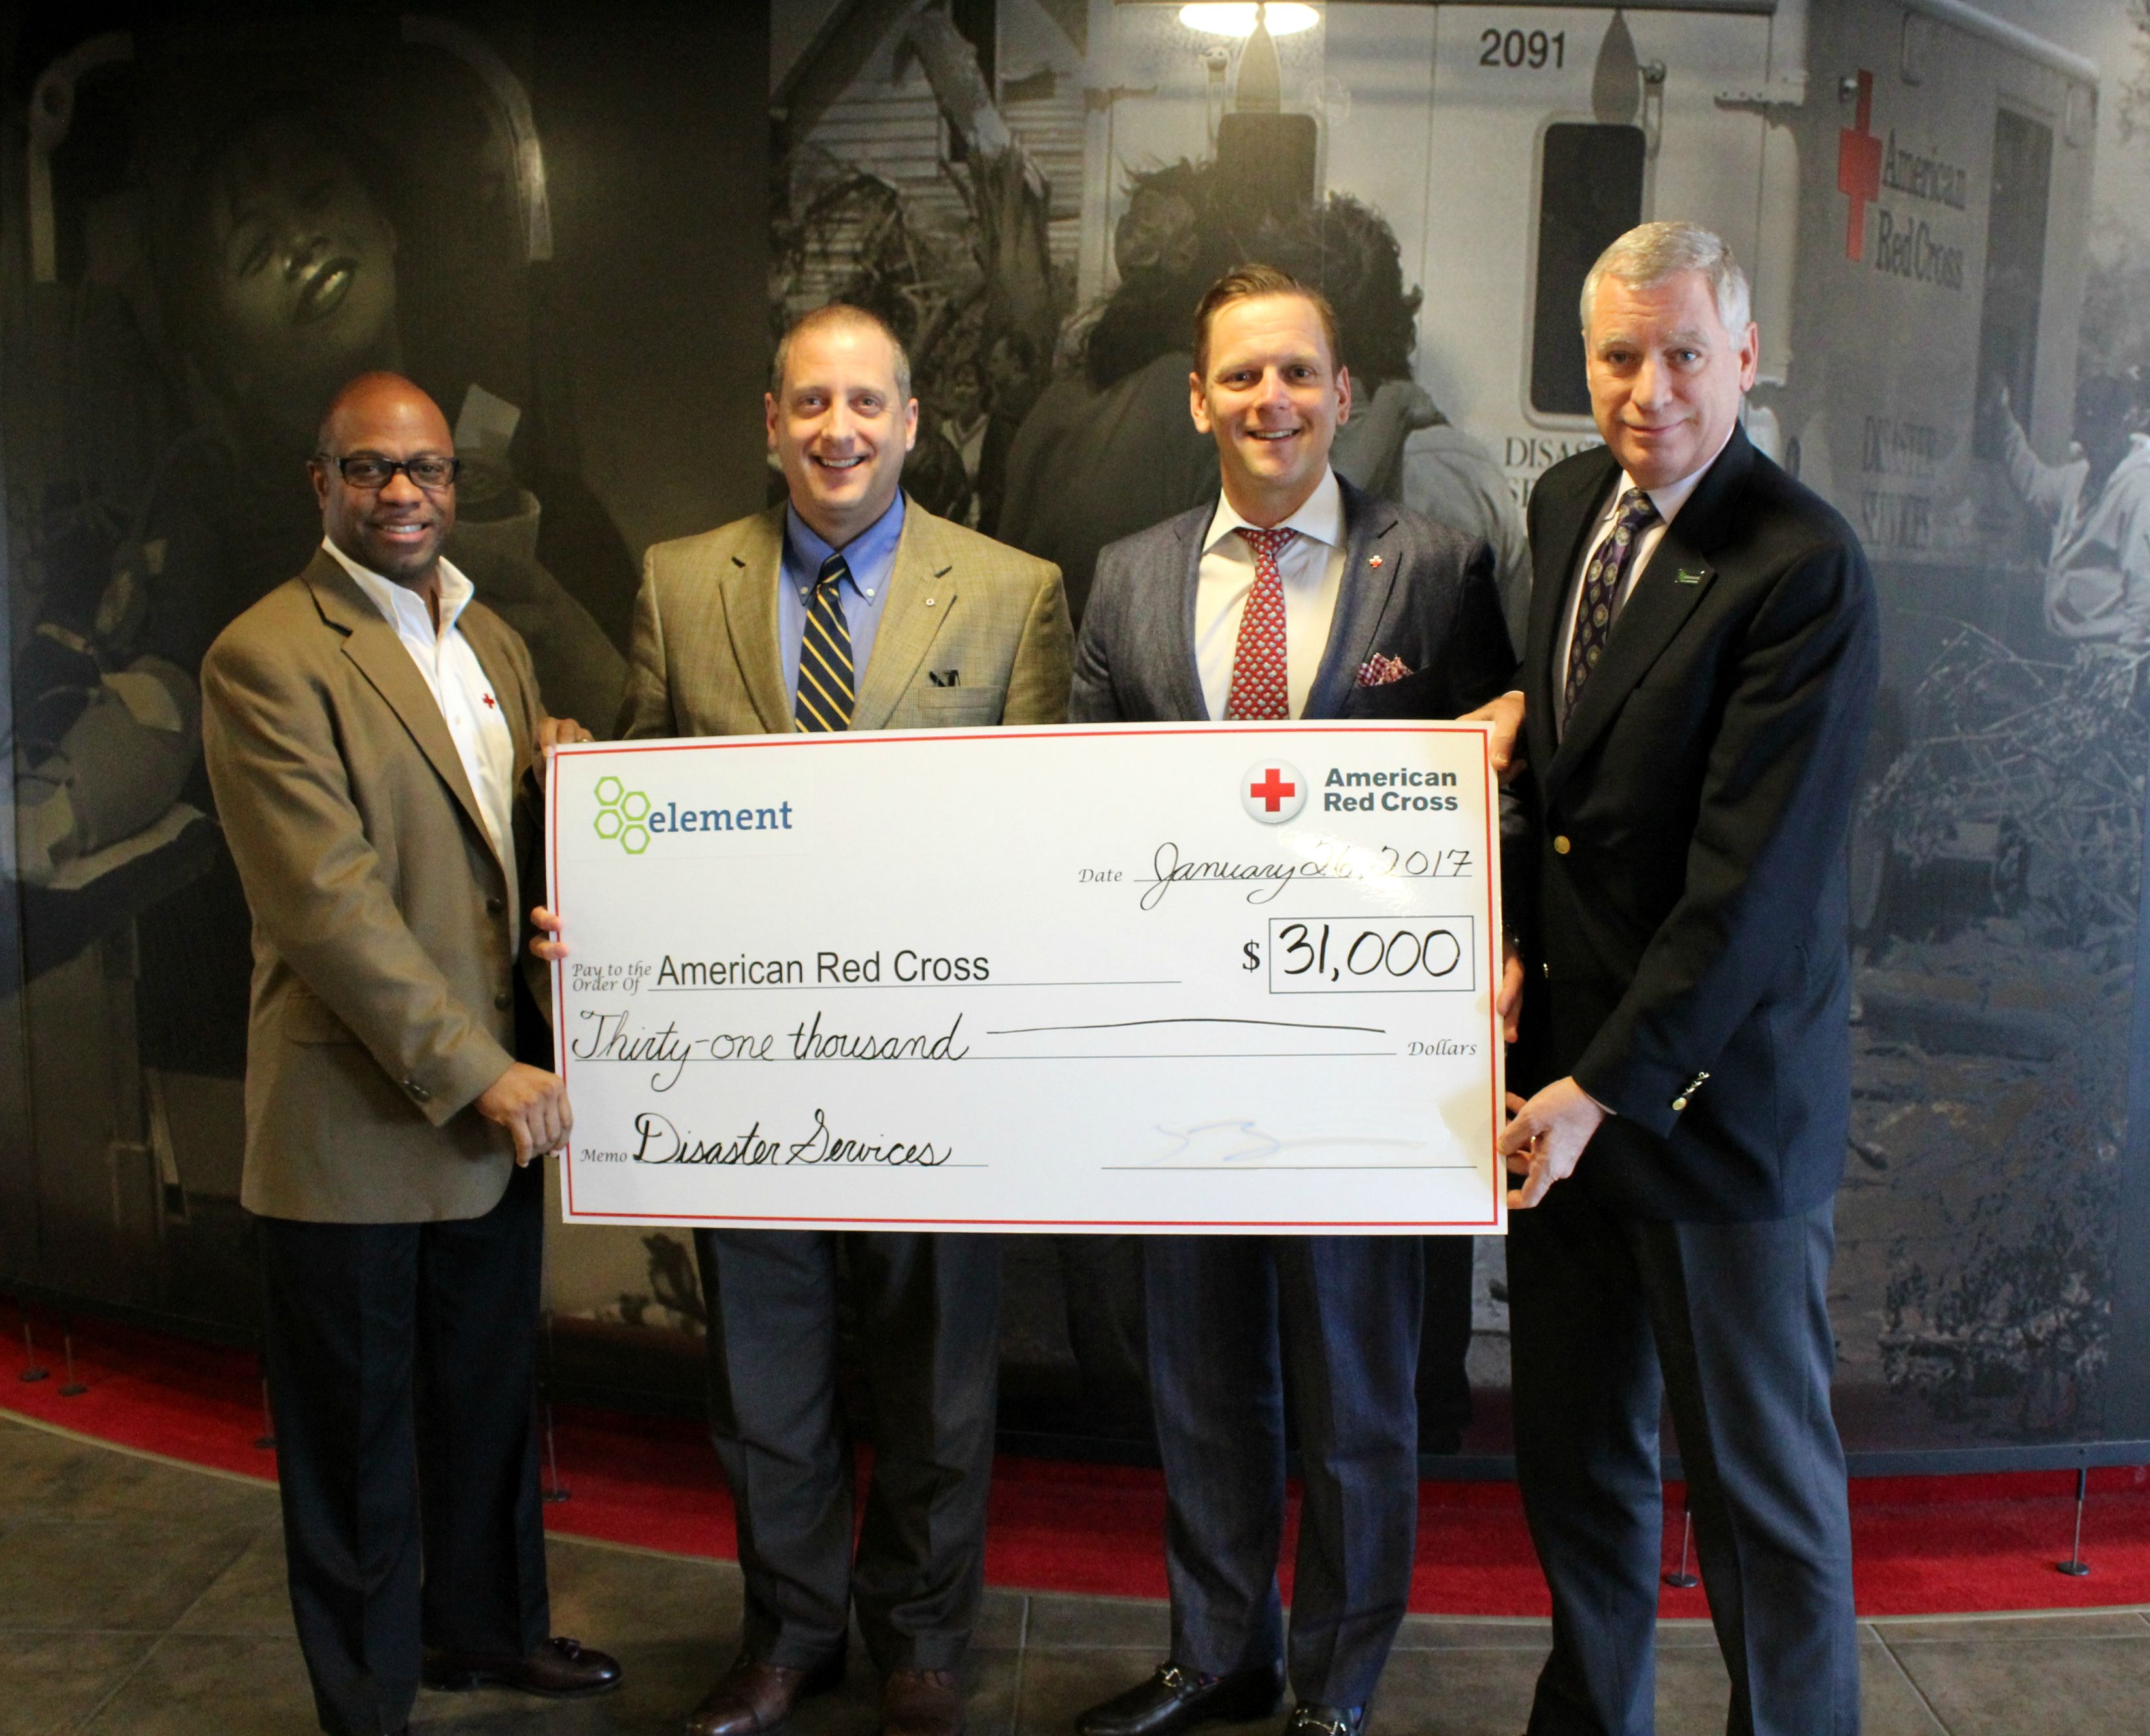 Element Donates to American Red Cross